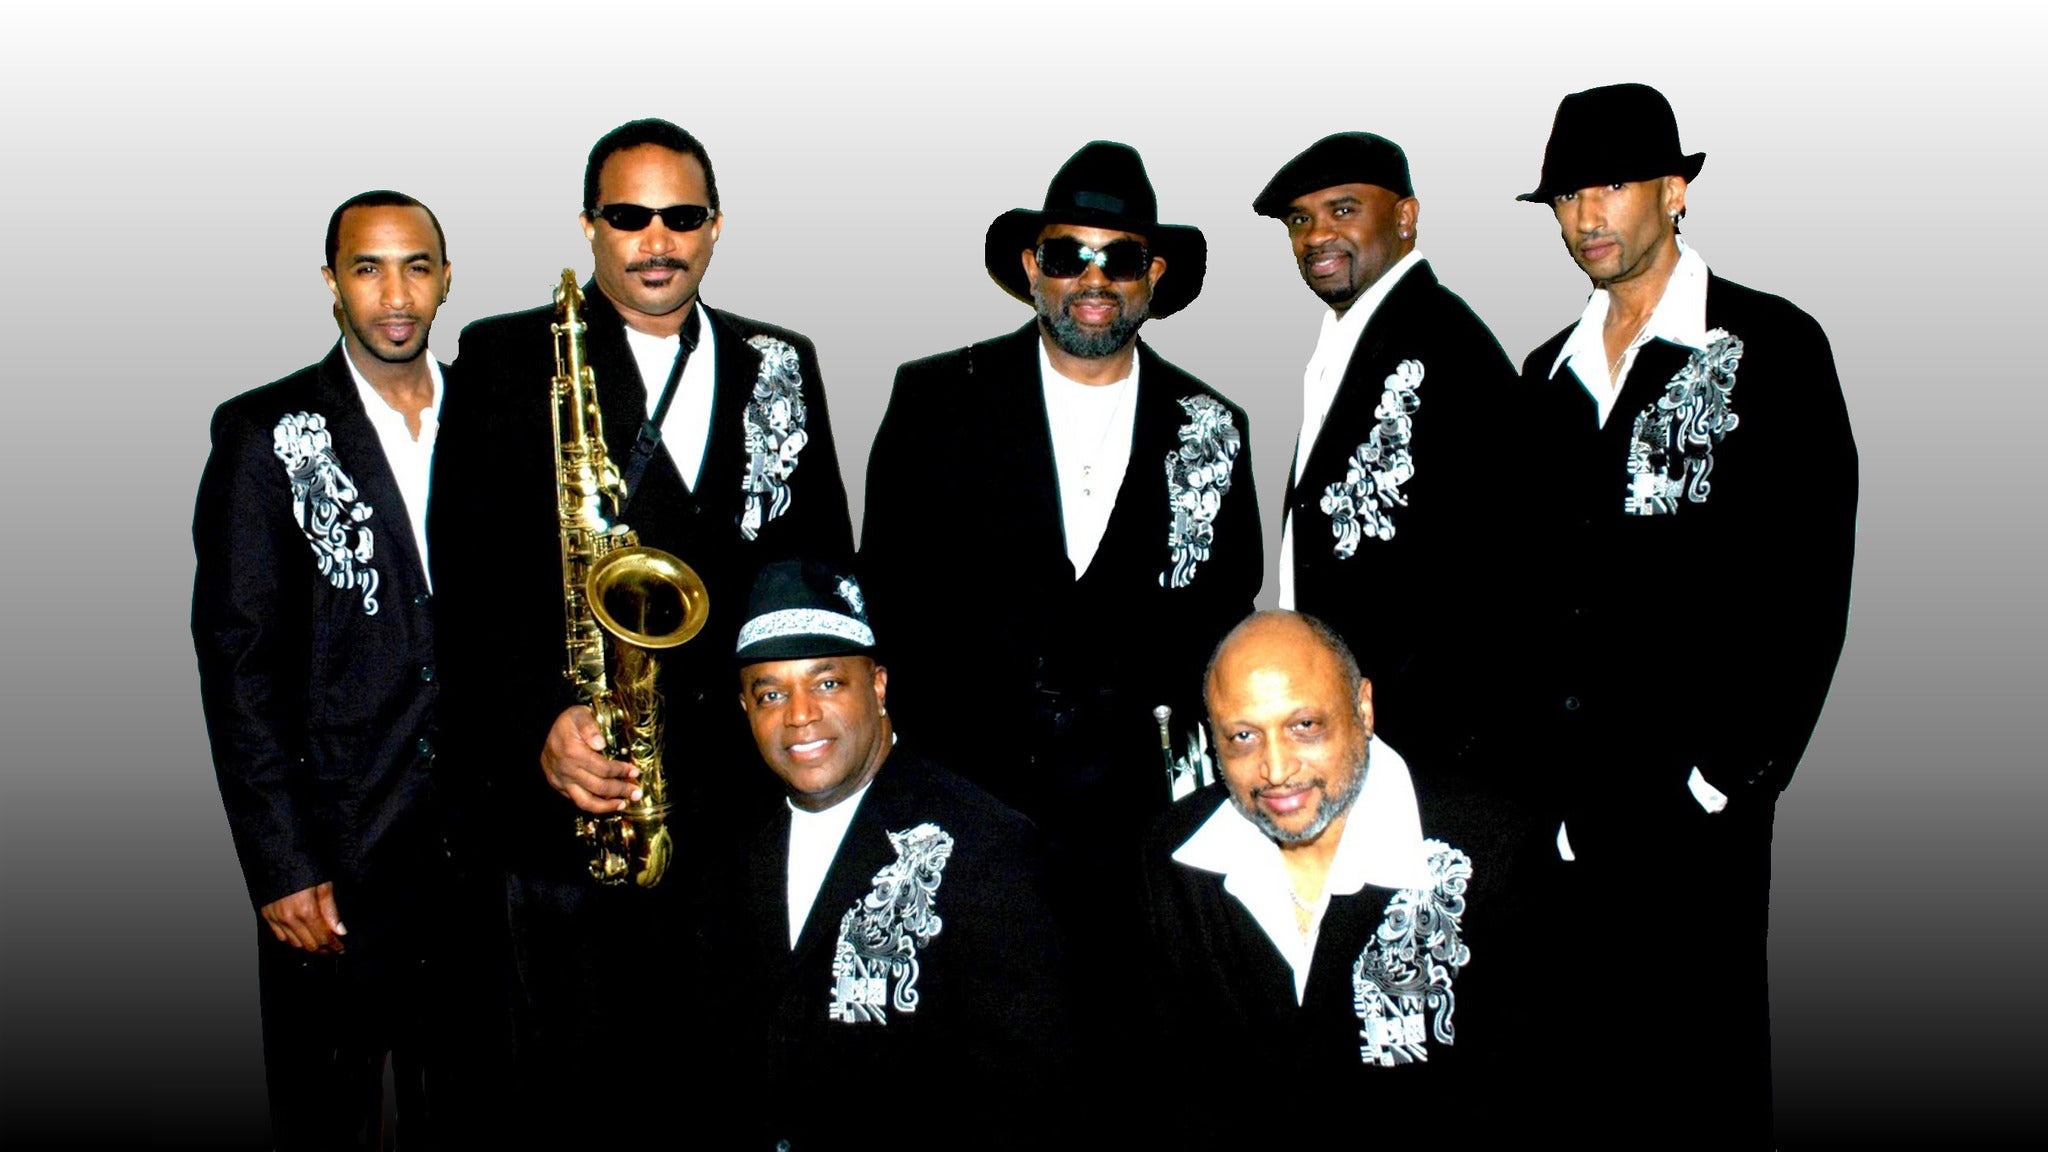 The Funk Legends Of R&B at James L Knight Center